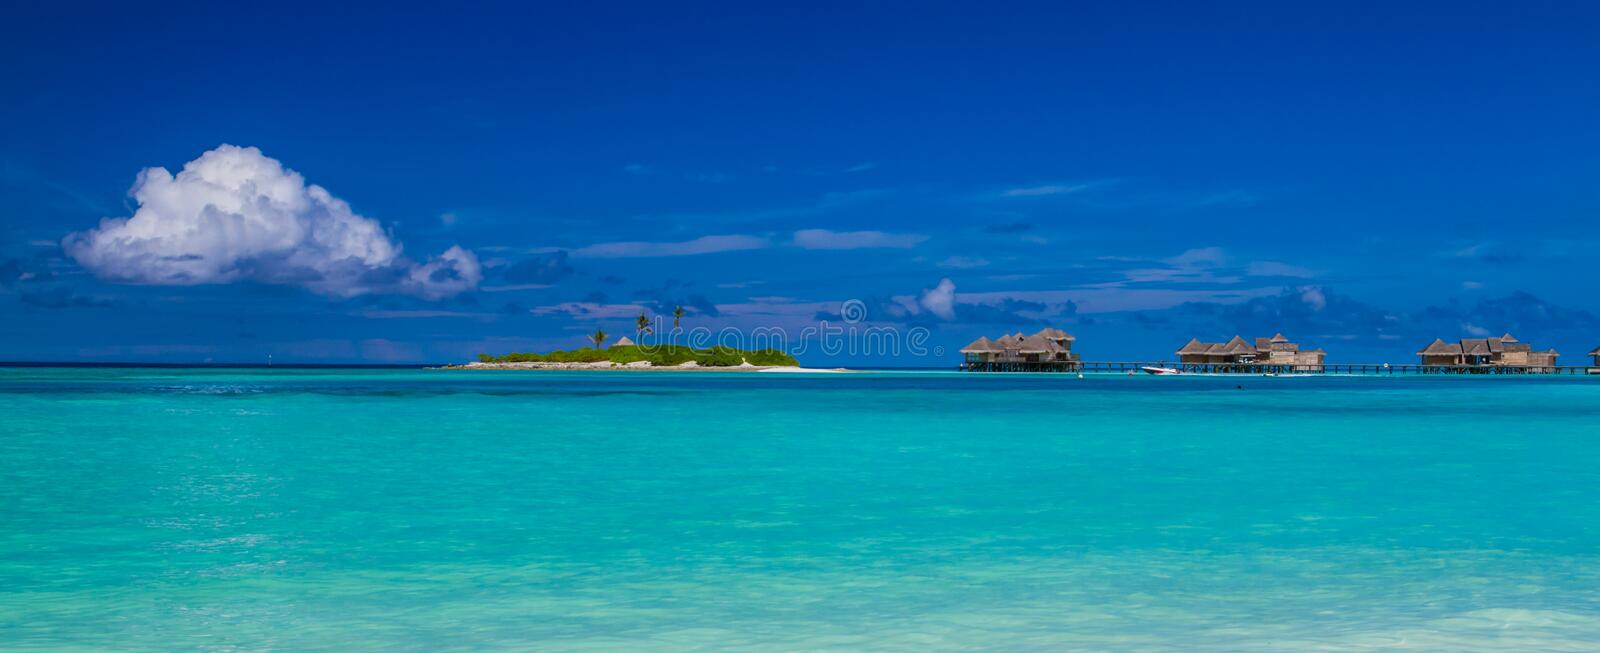 Maldives water bungalows panorama under the blue sky. Maldives beach panorama. Luxury water villas, in exotic blue lagoon. Wide screen background concept royalty free stock photo